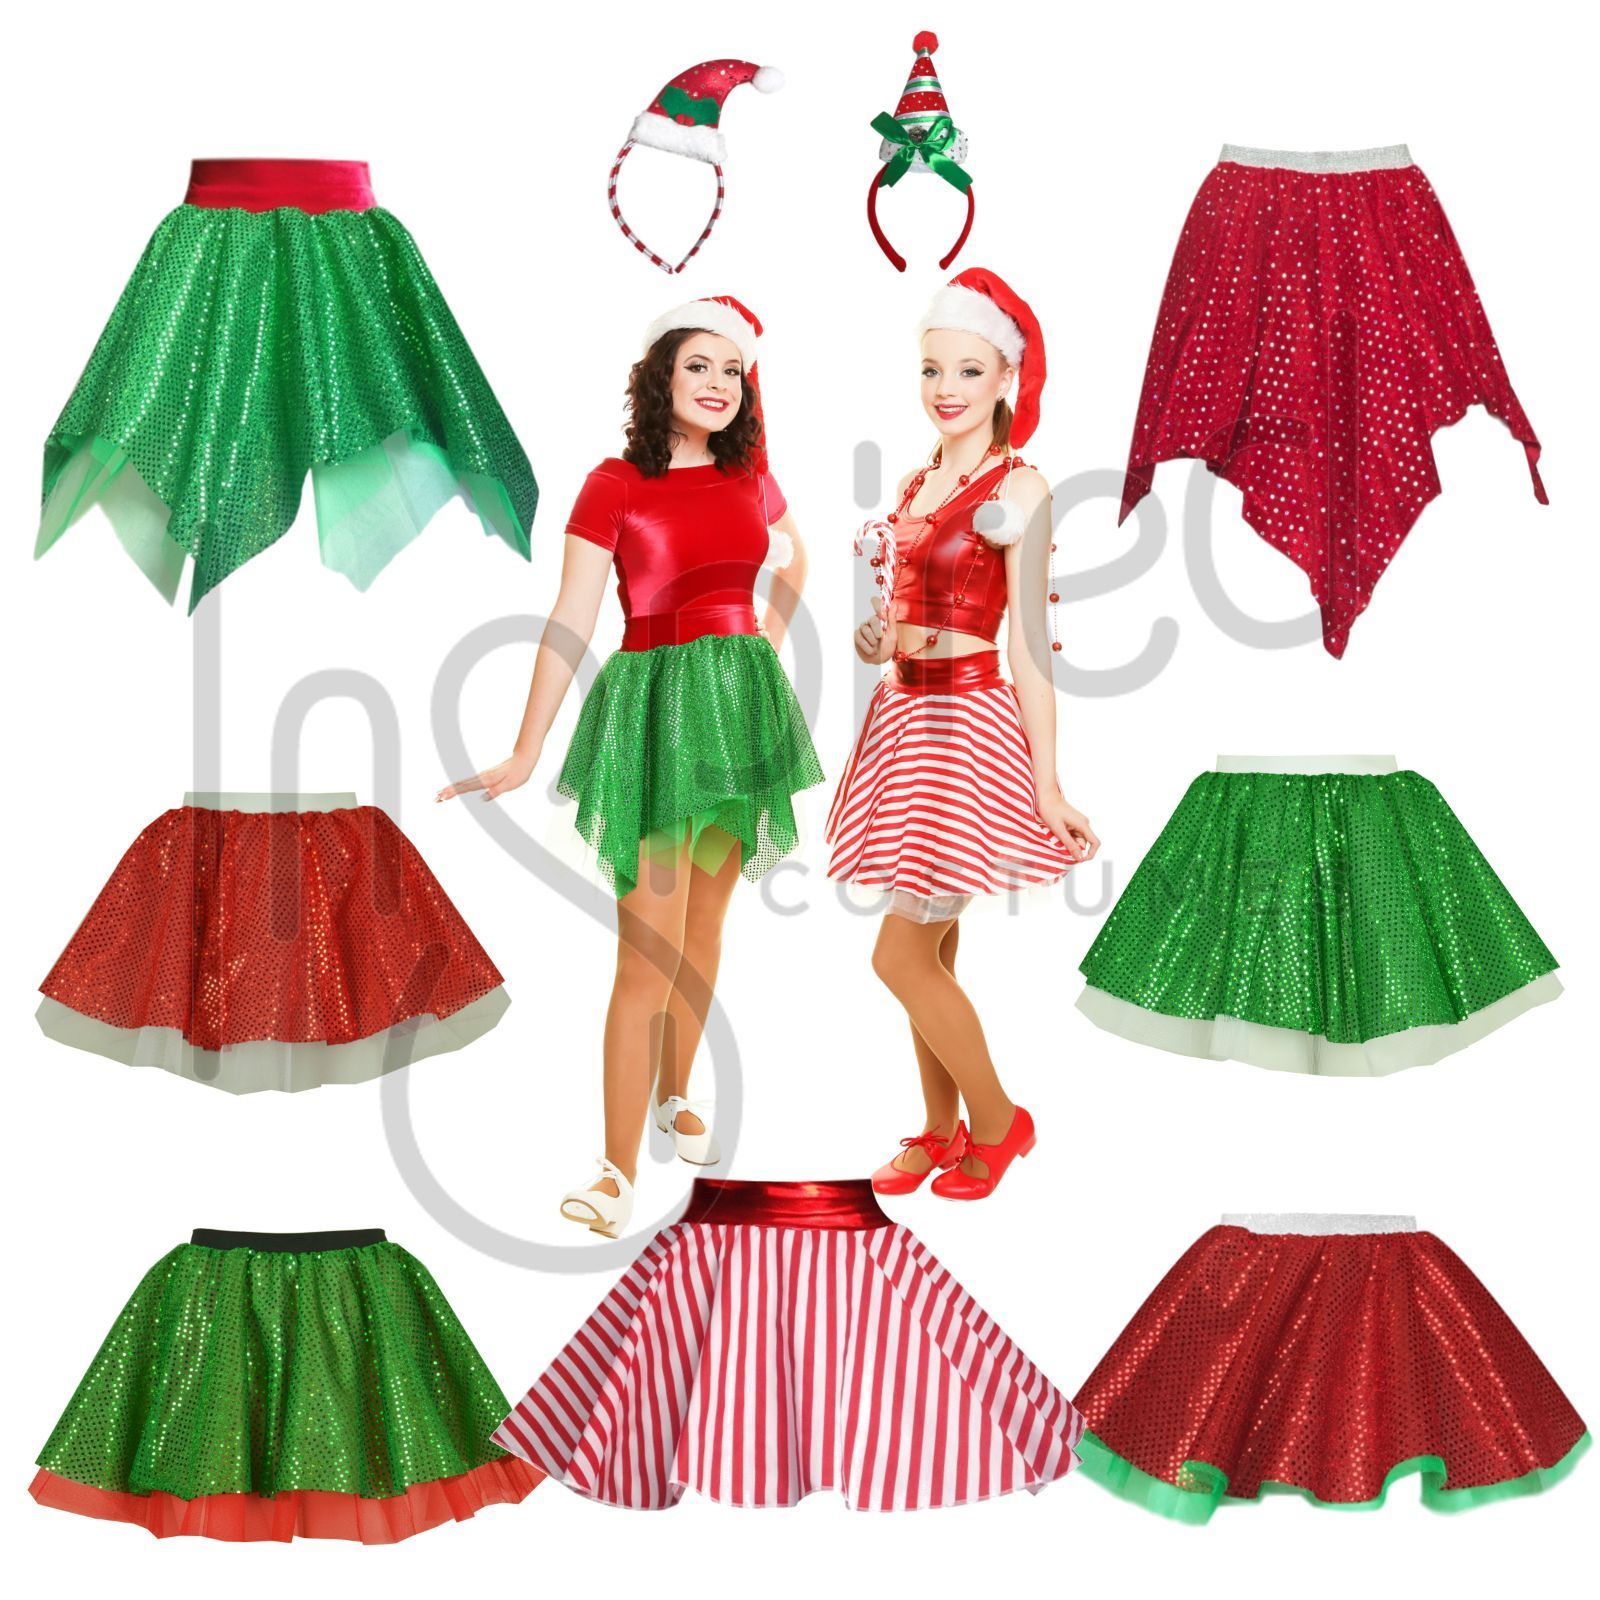 Lot of 6 Holiday Red w// Green feather /& bow Christmas Hats Child size Alpine set